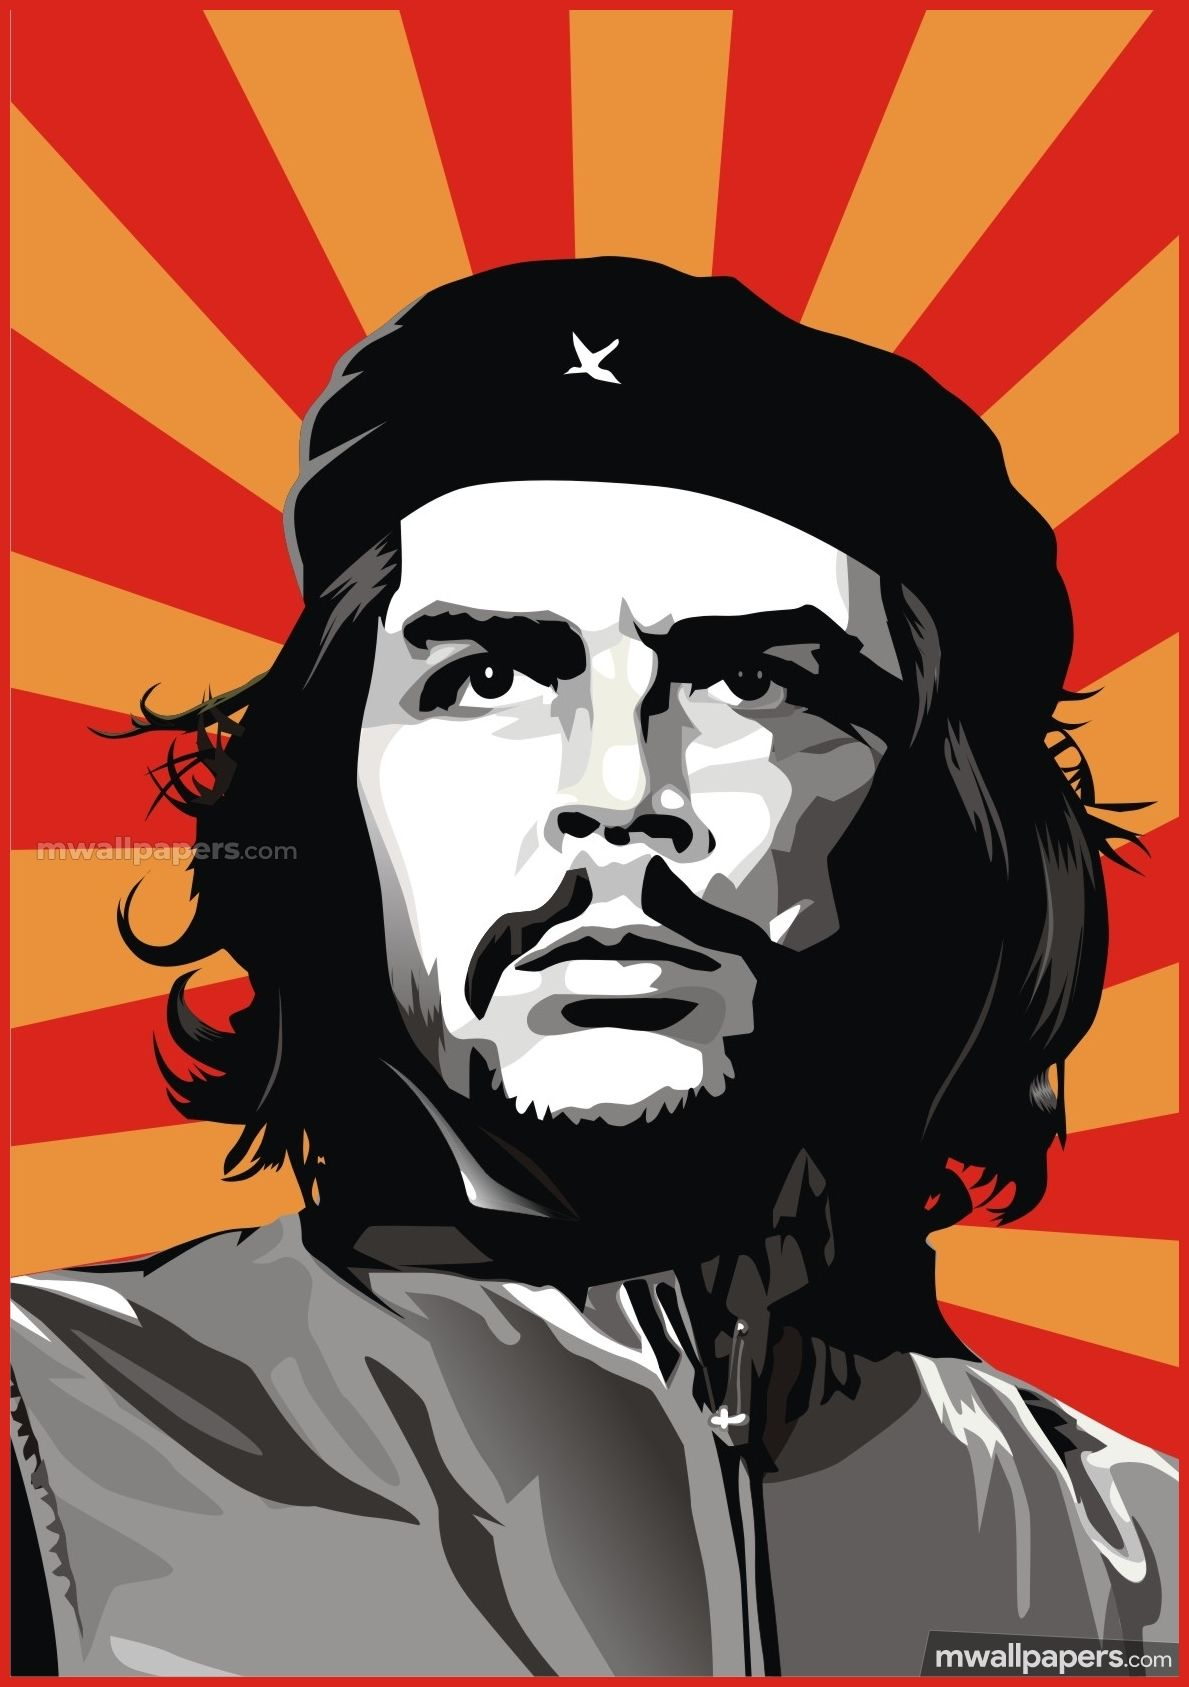 Che Guevara Wallpapers Hd Best Hd Photos 1080p In 2019 Che